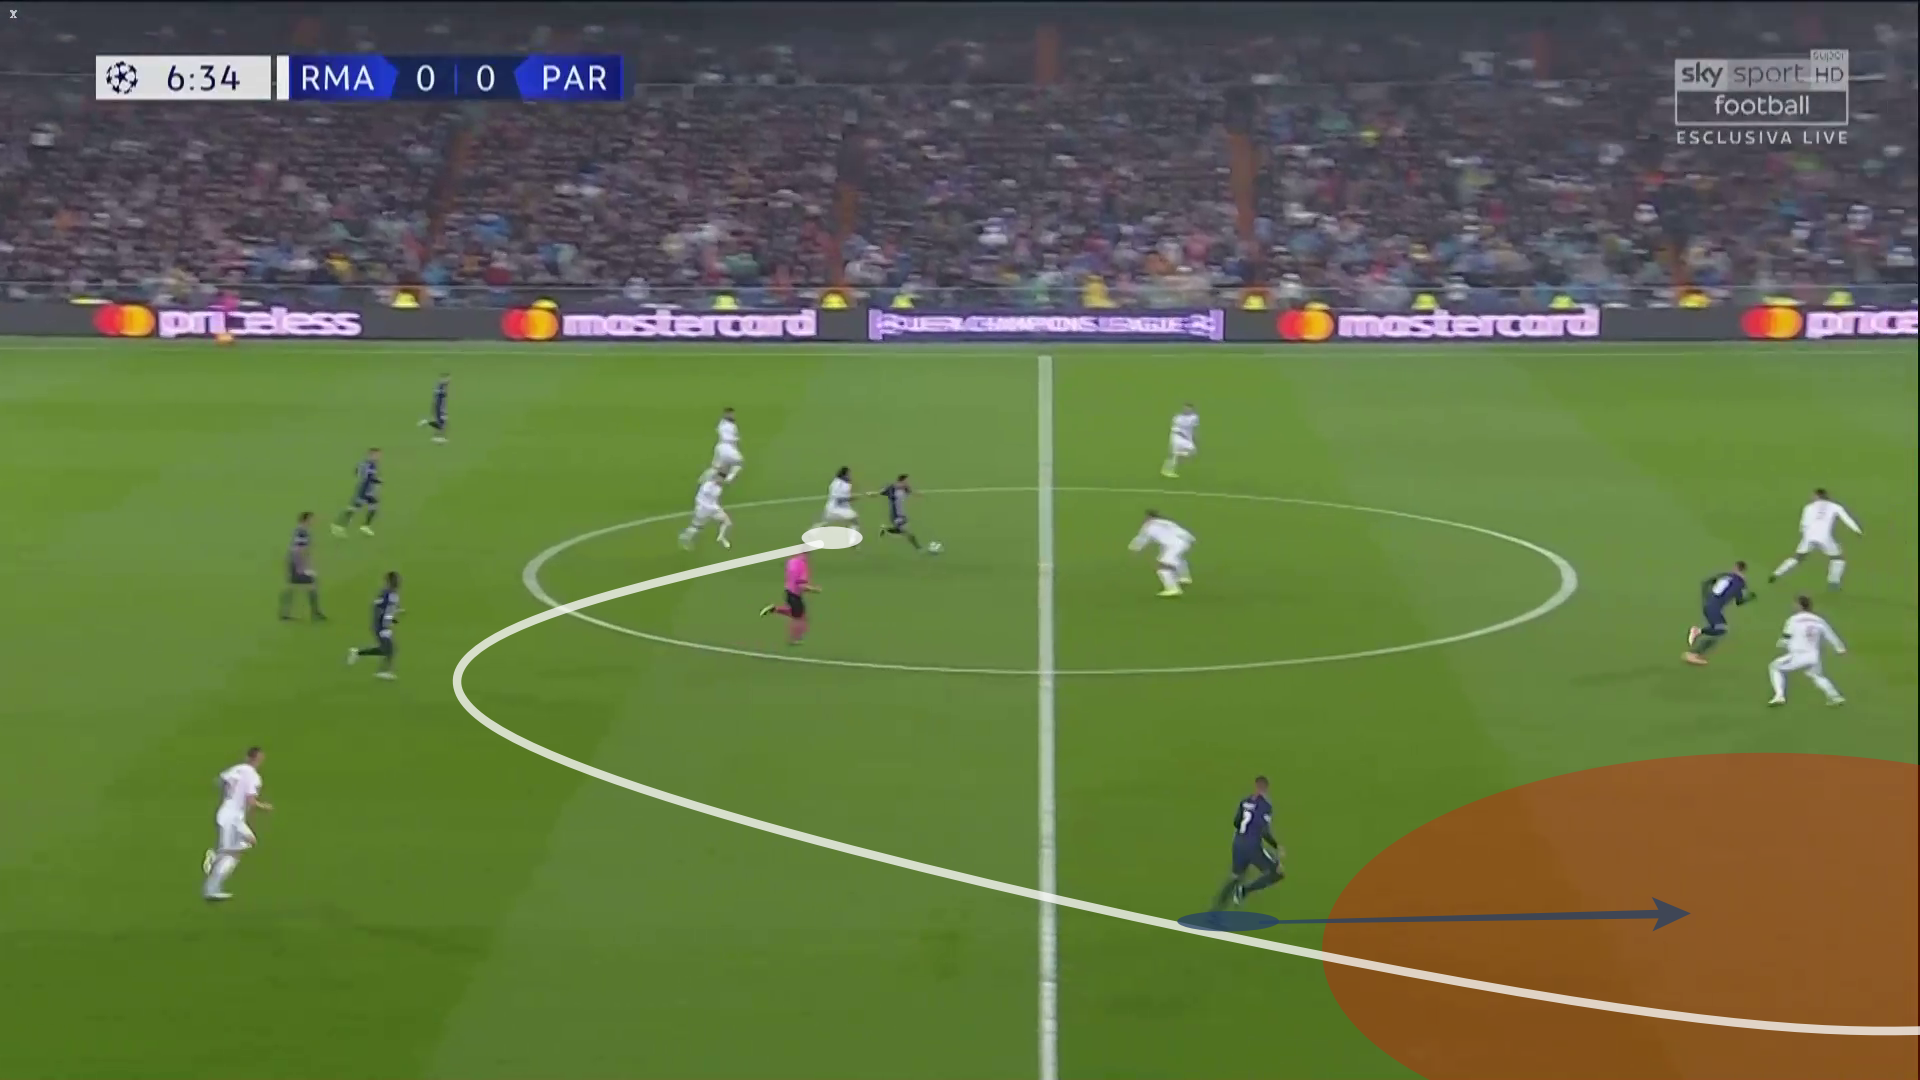 UEFA Champions League 2019/20: Real Madrid vs PSG - tactical analysis tactics